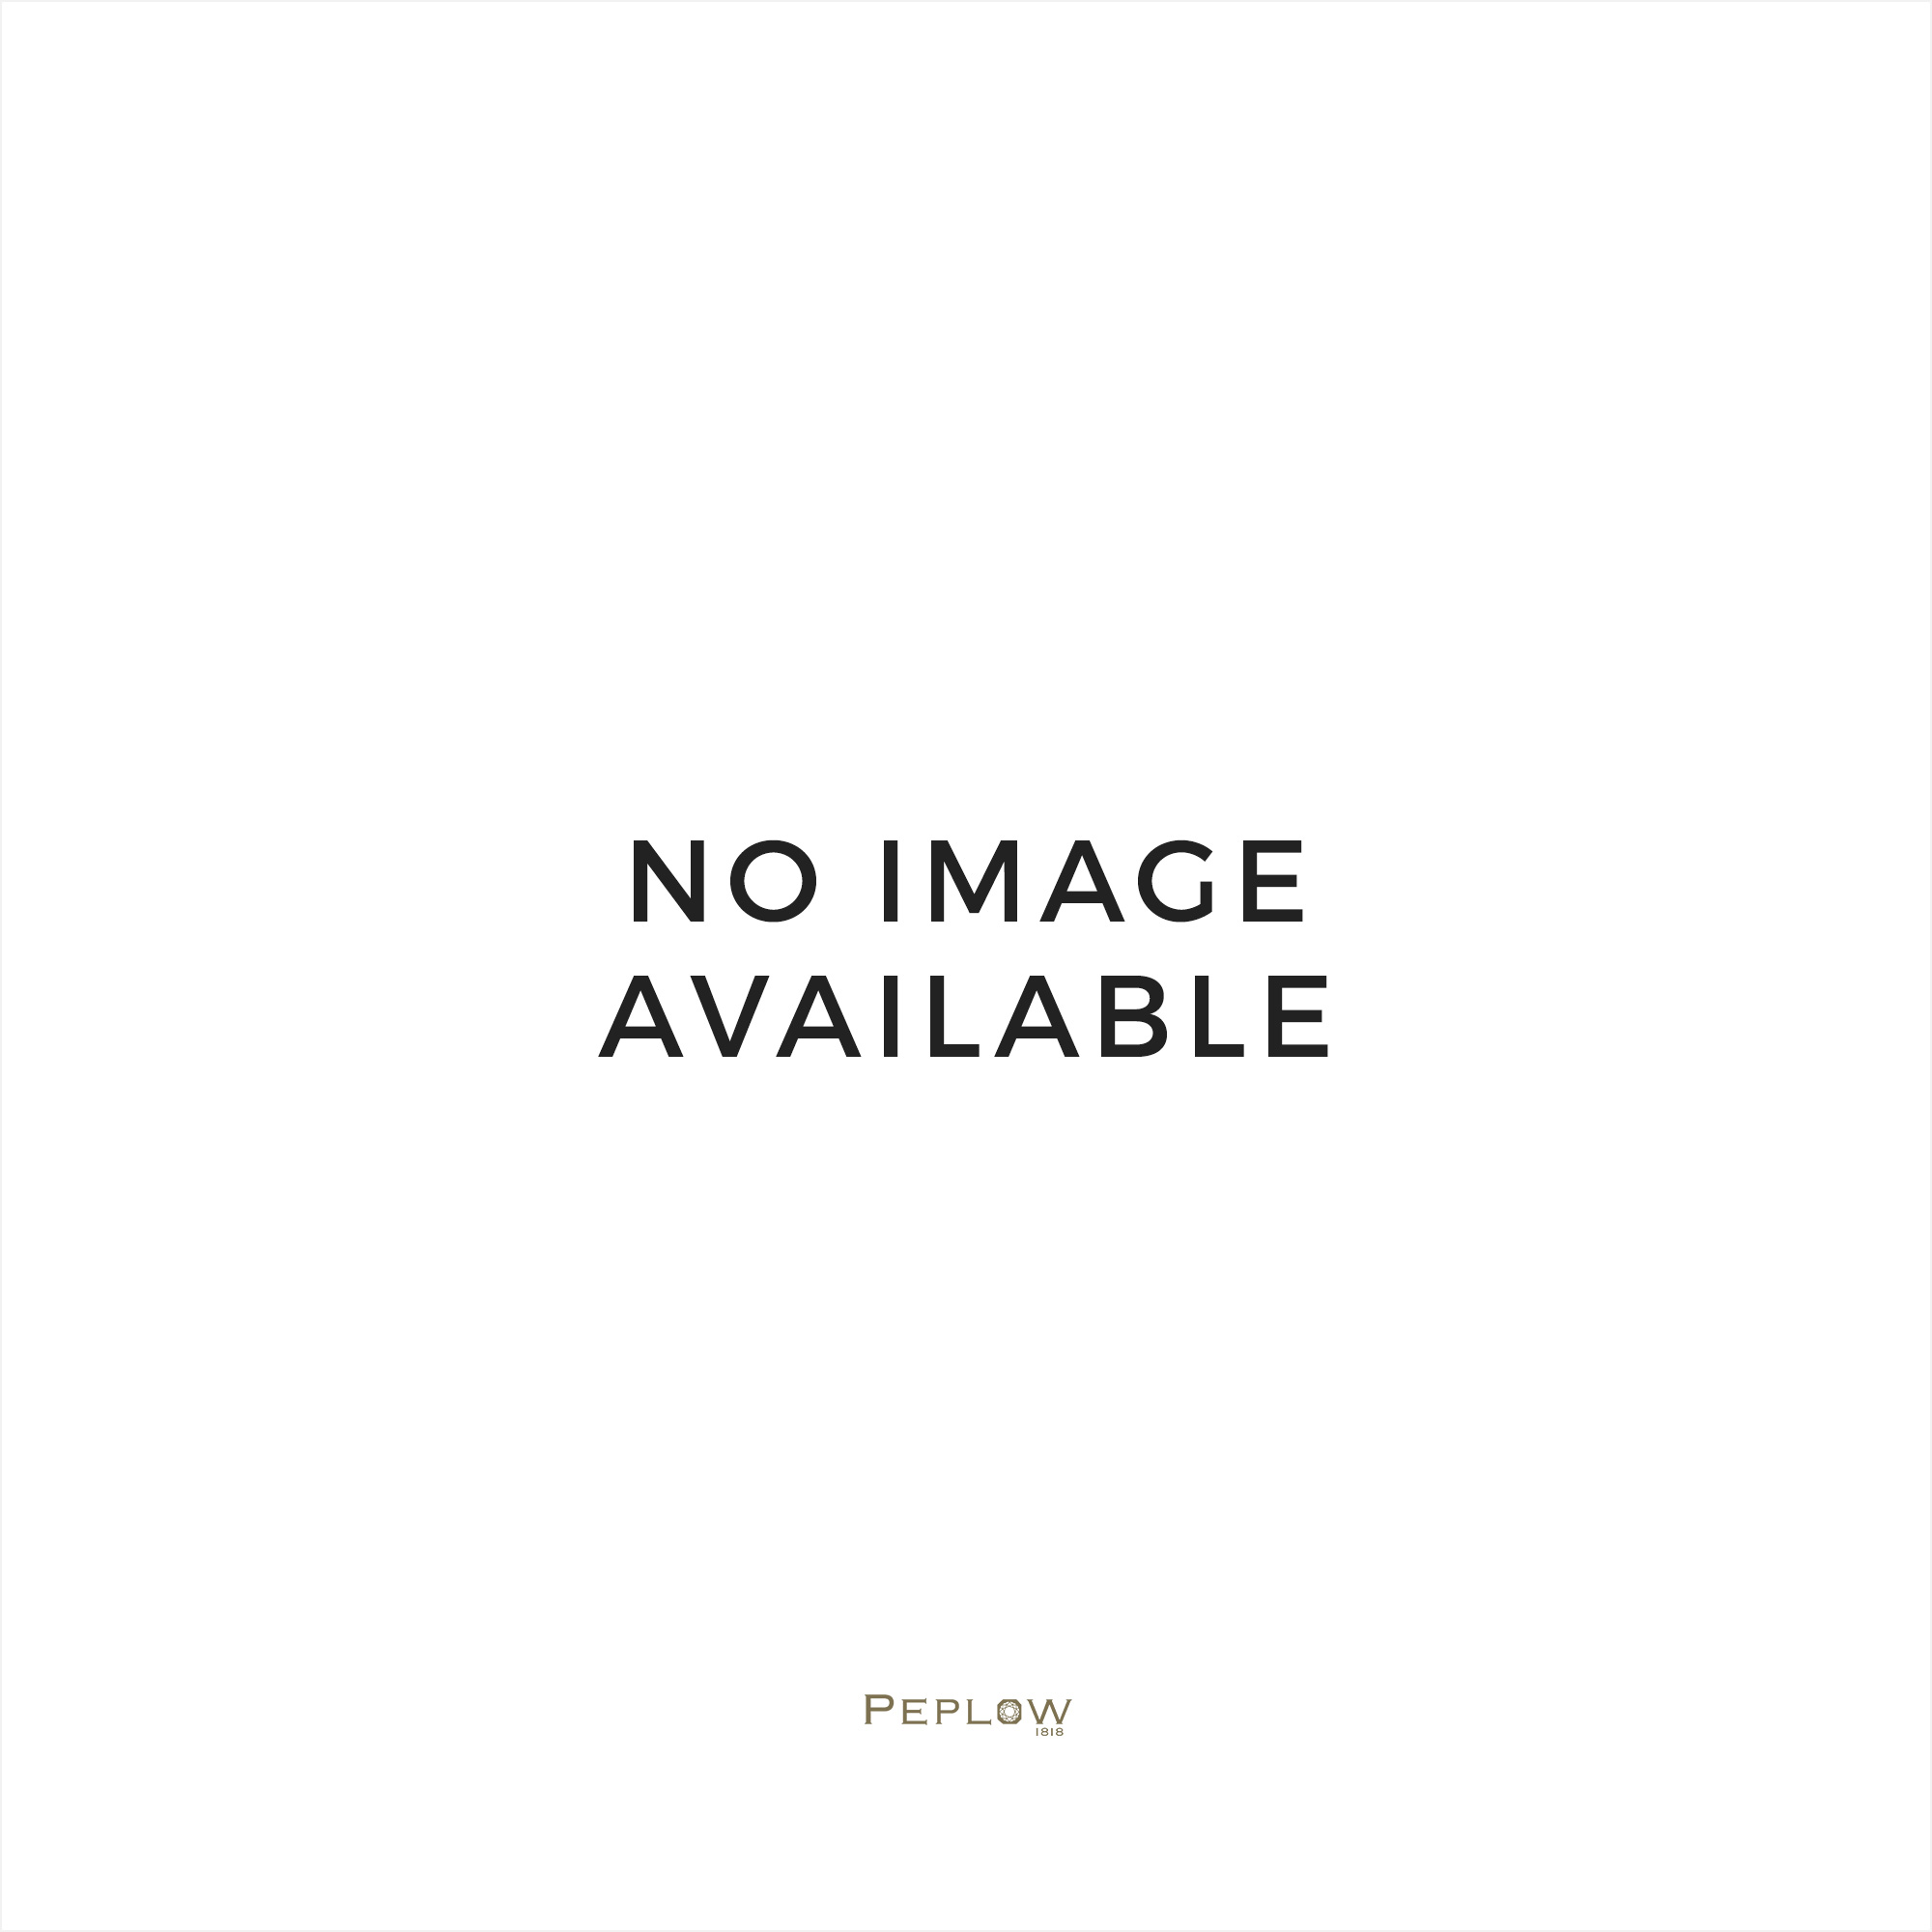 Tissot gents Everytime Large strap model ref T109 610 1603700